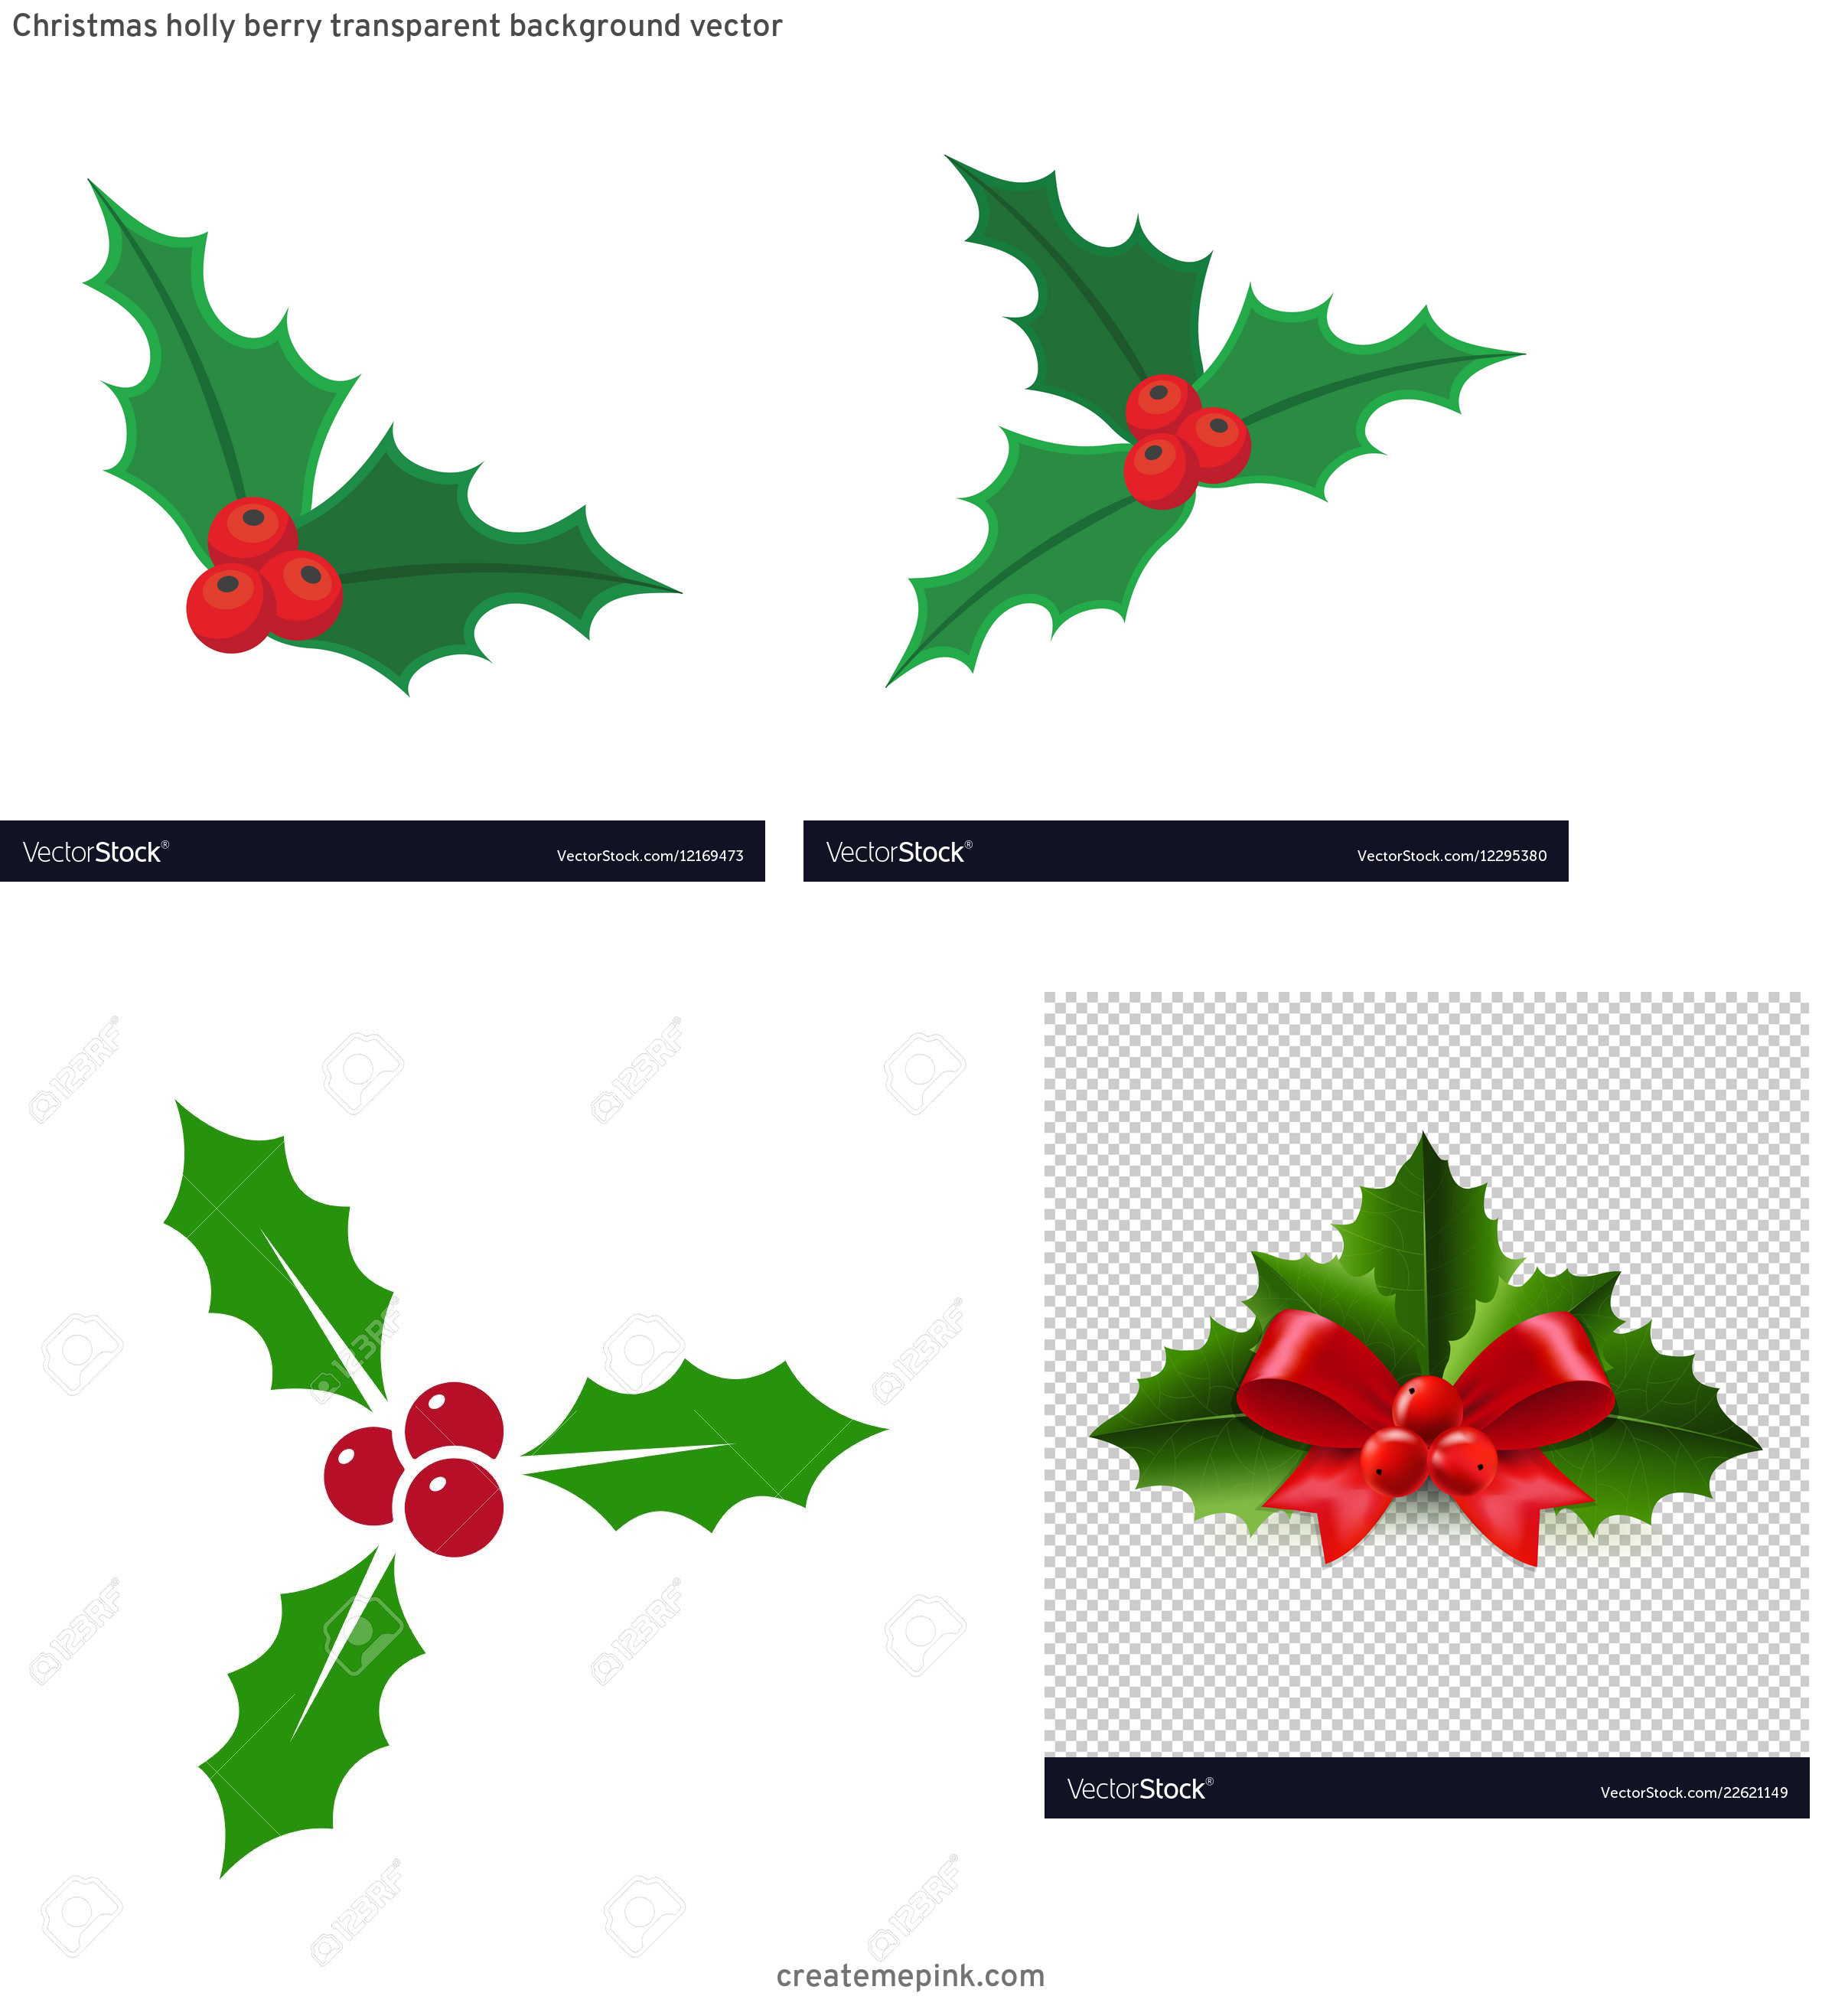 Holly Berry Vector Background: Christmas Holly Berry Transparent Background Vector